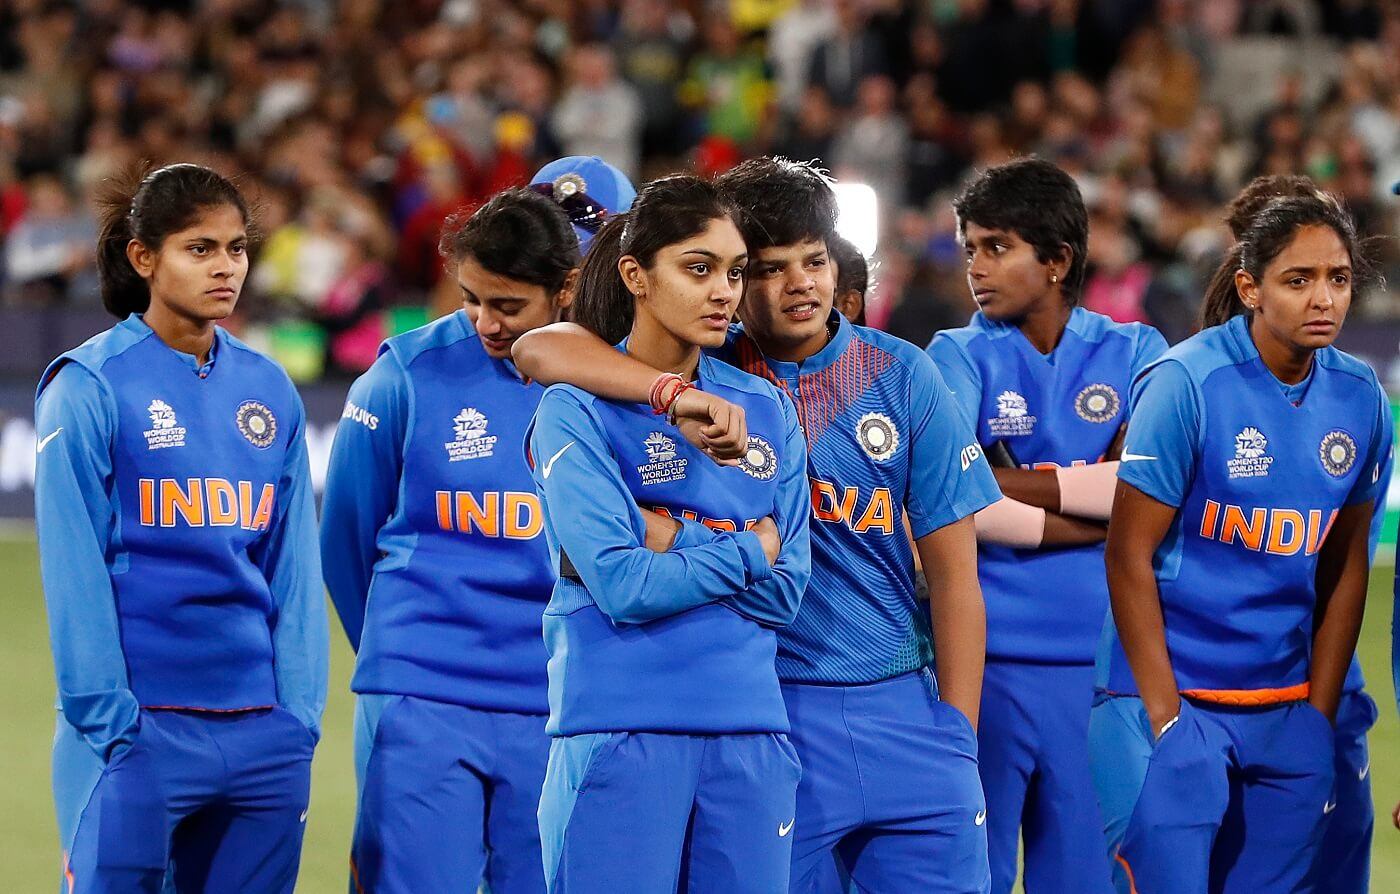 After England, Indian Women